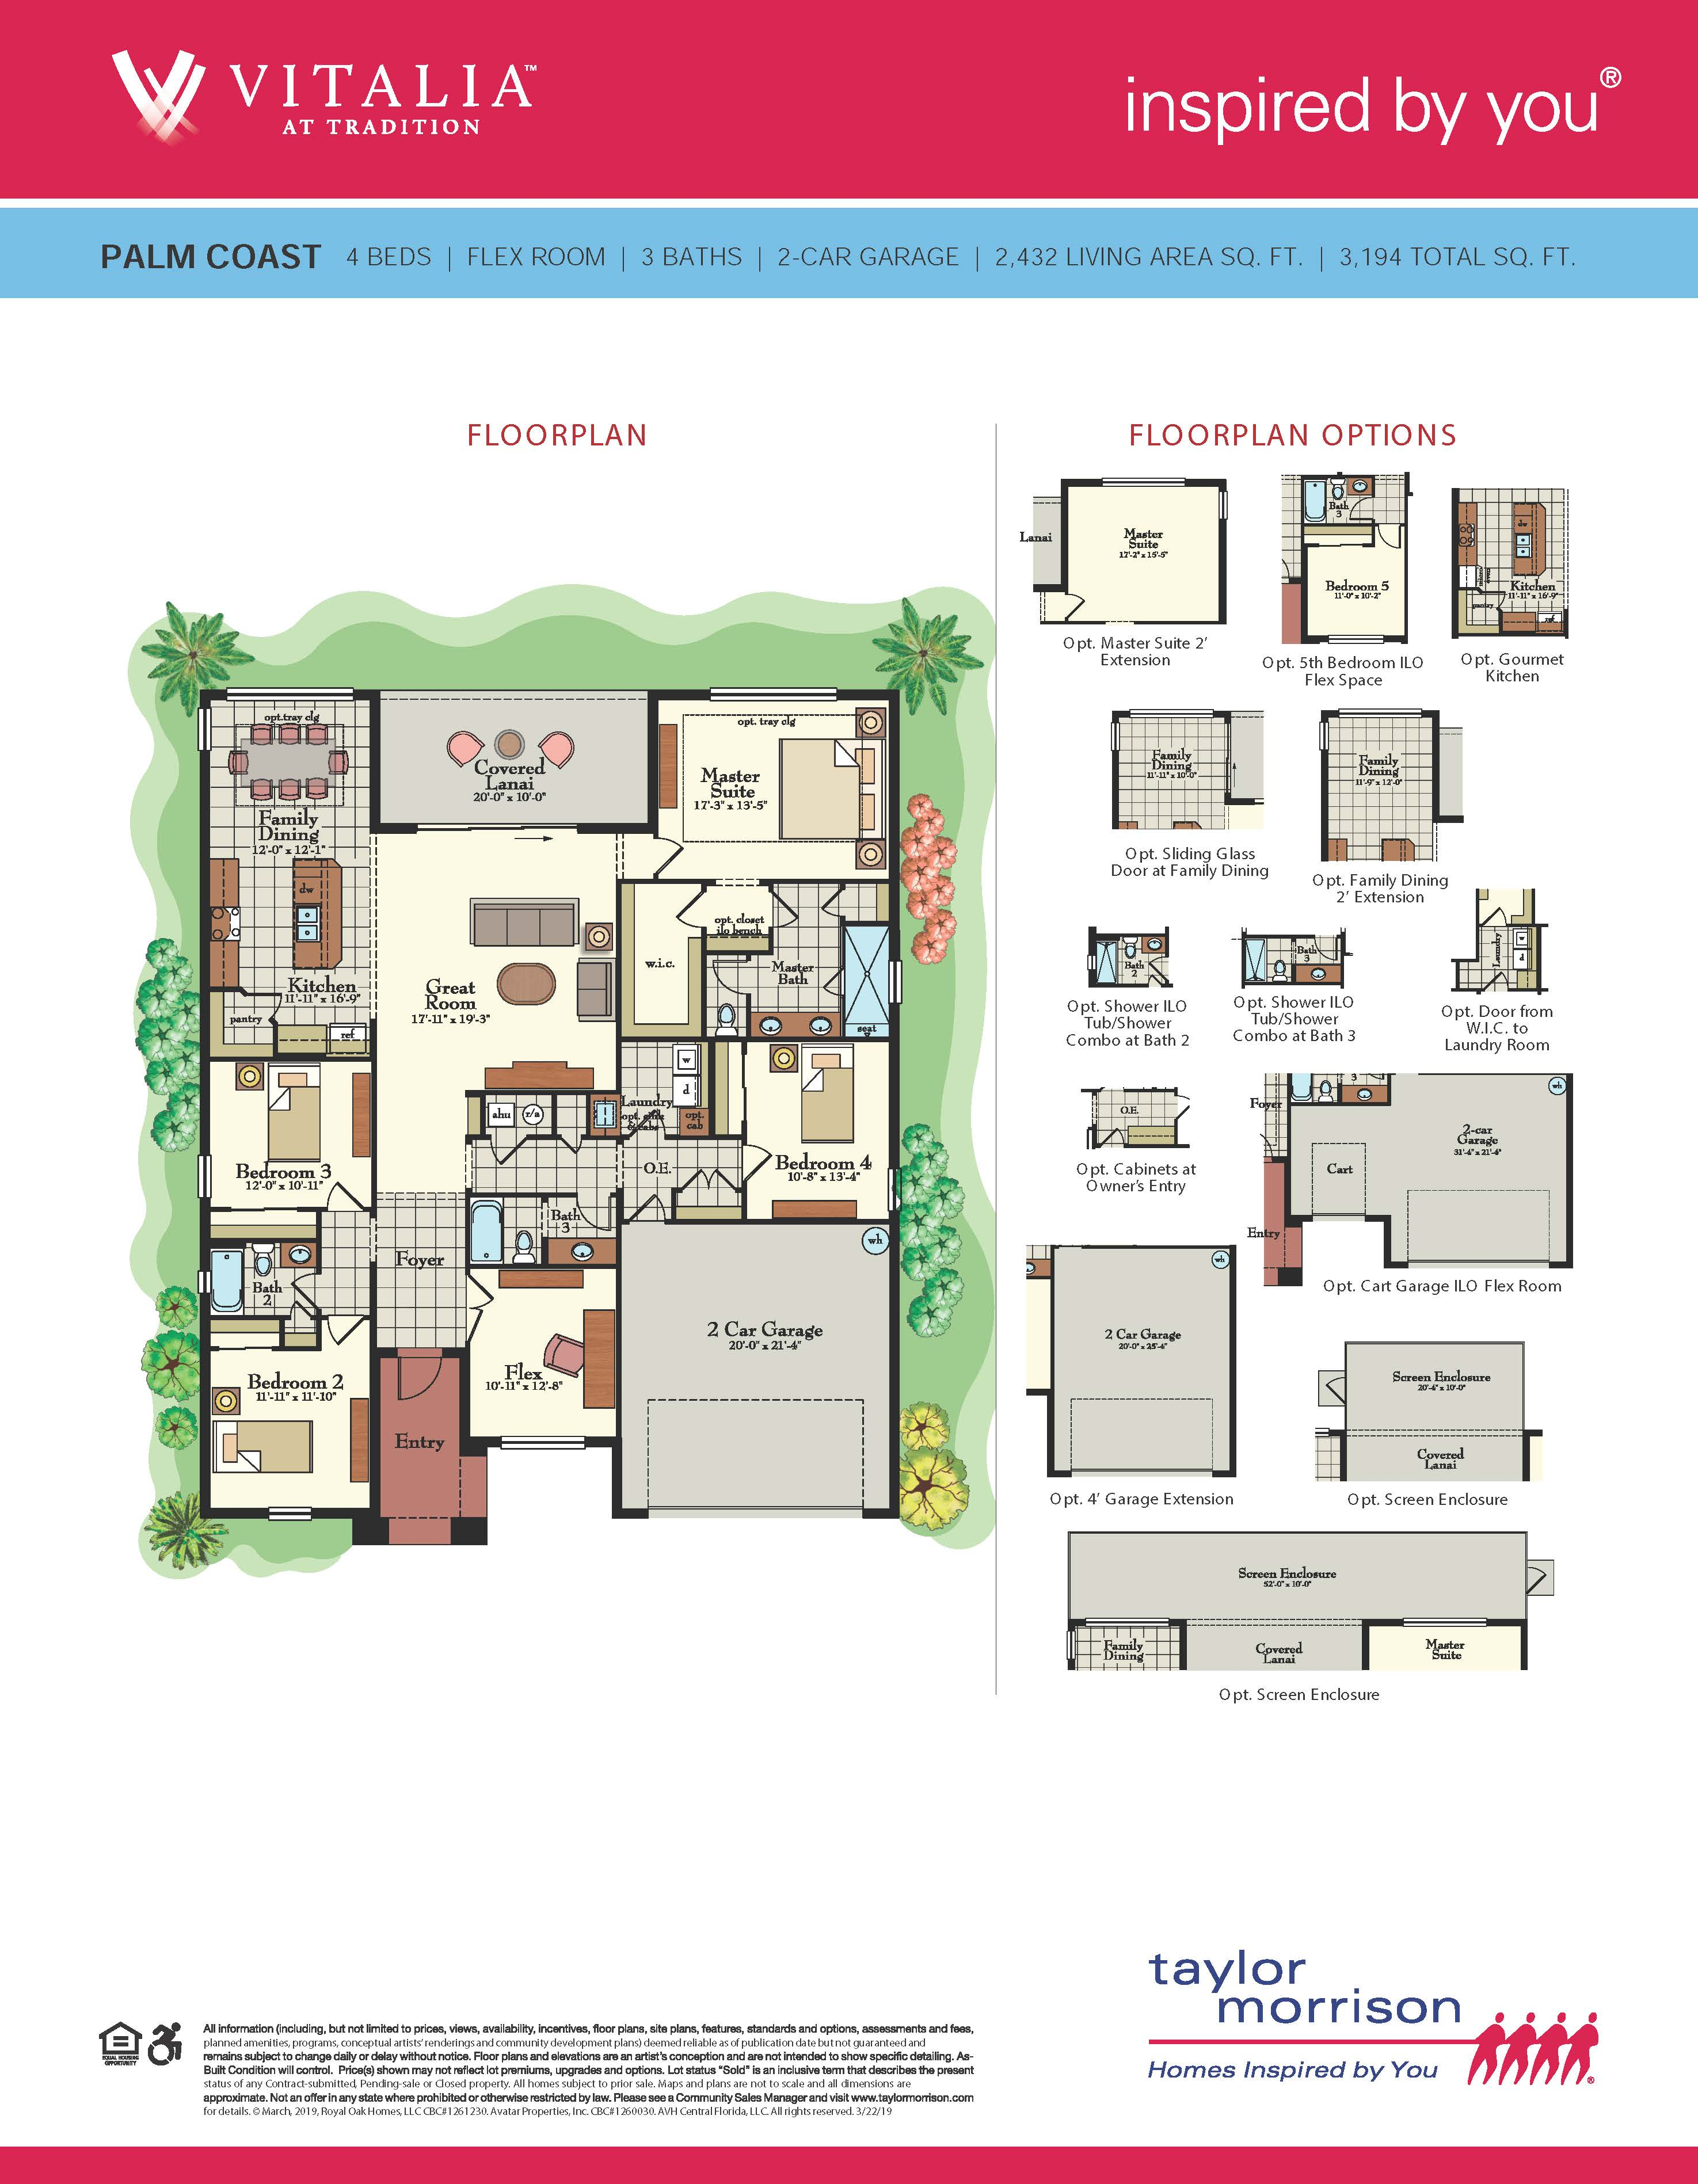 Vitalia At Tradition Port St Lucie Real Estate